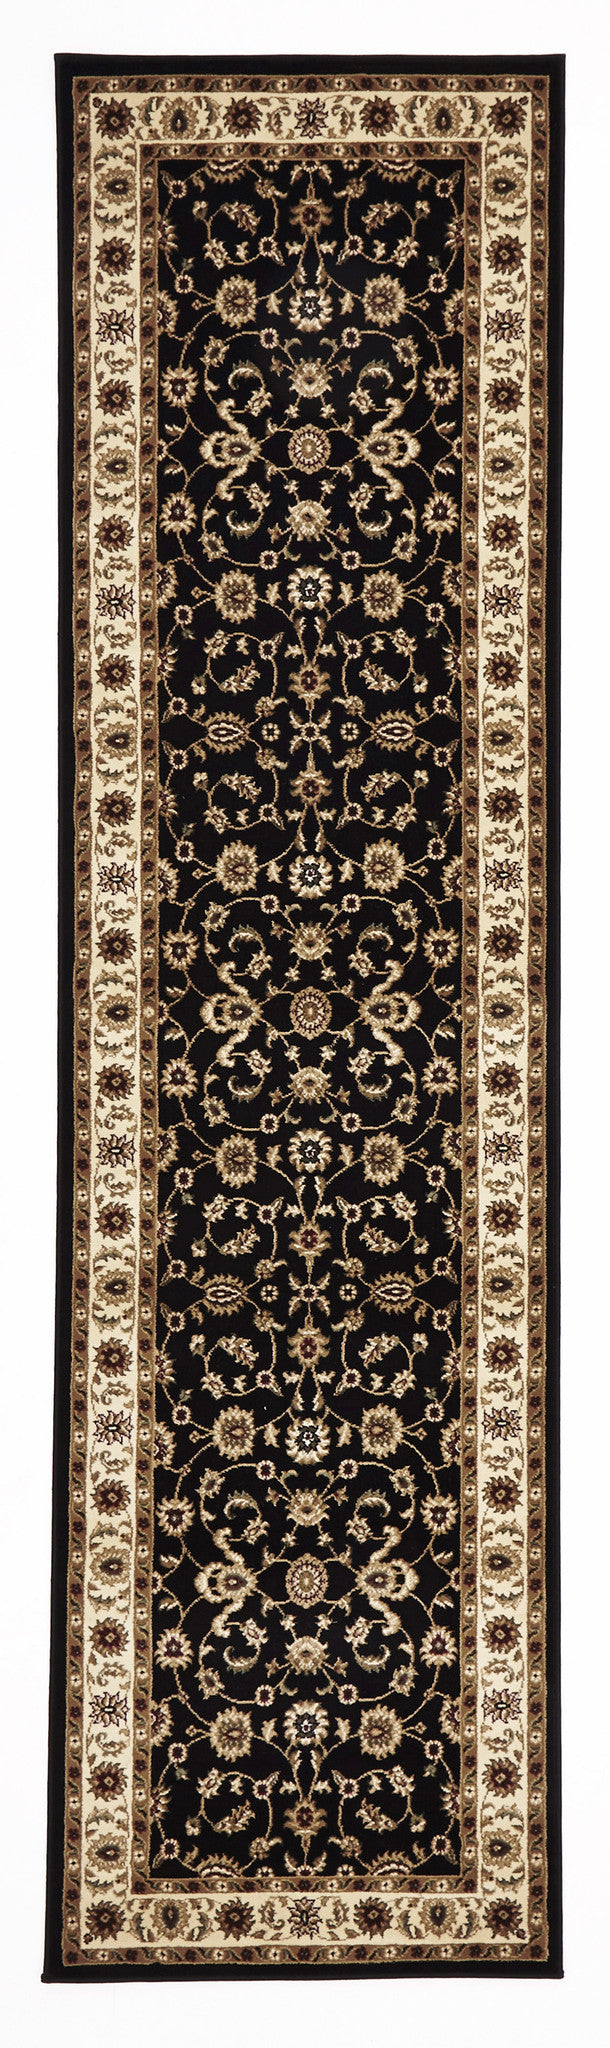 Classic Rug Black with Ivory Border - MaddieBelle